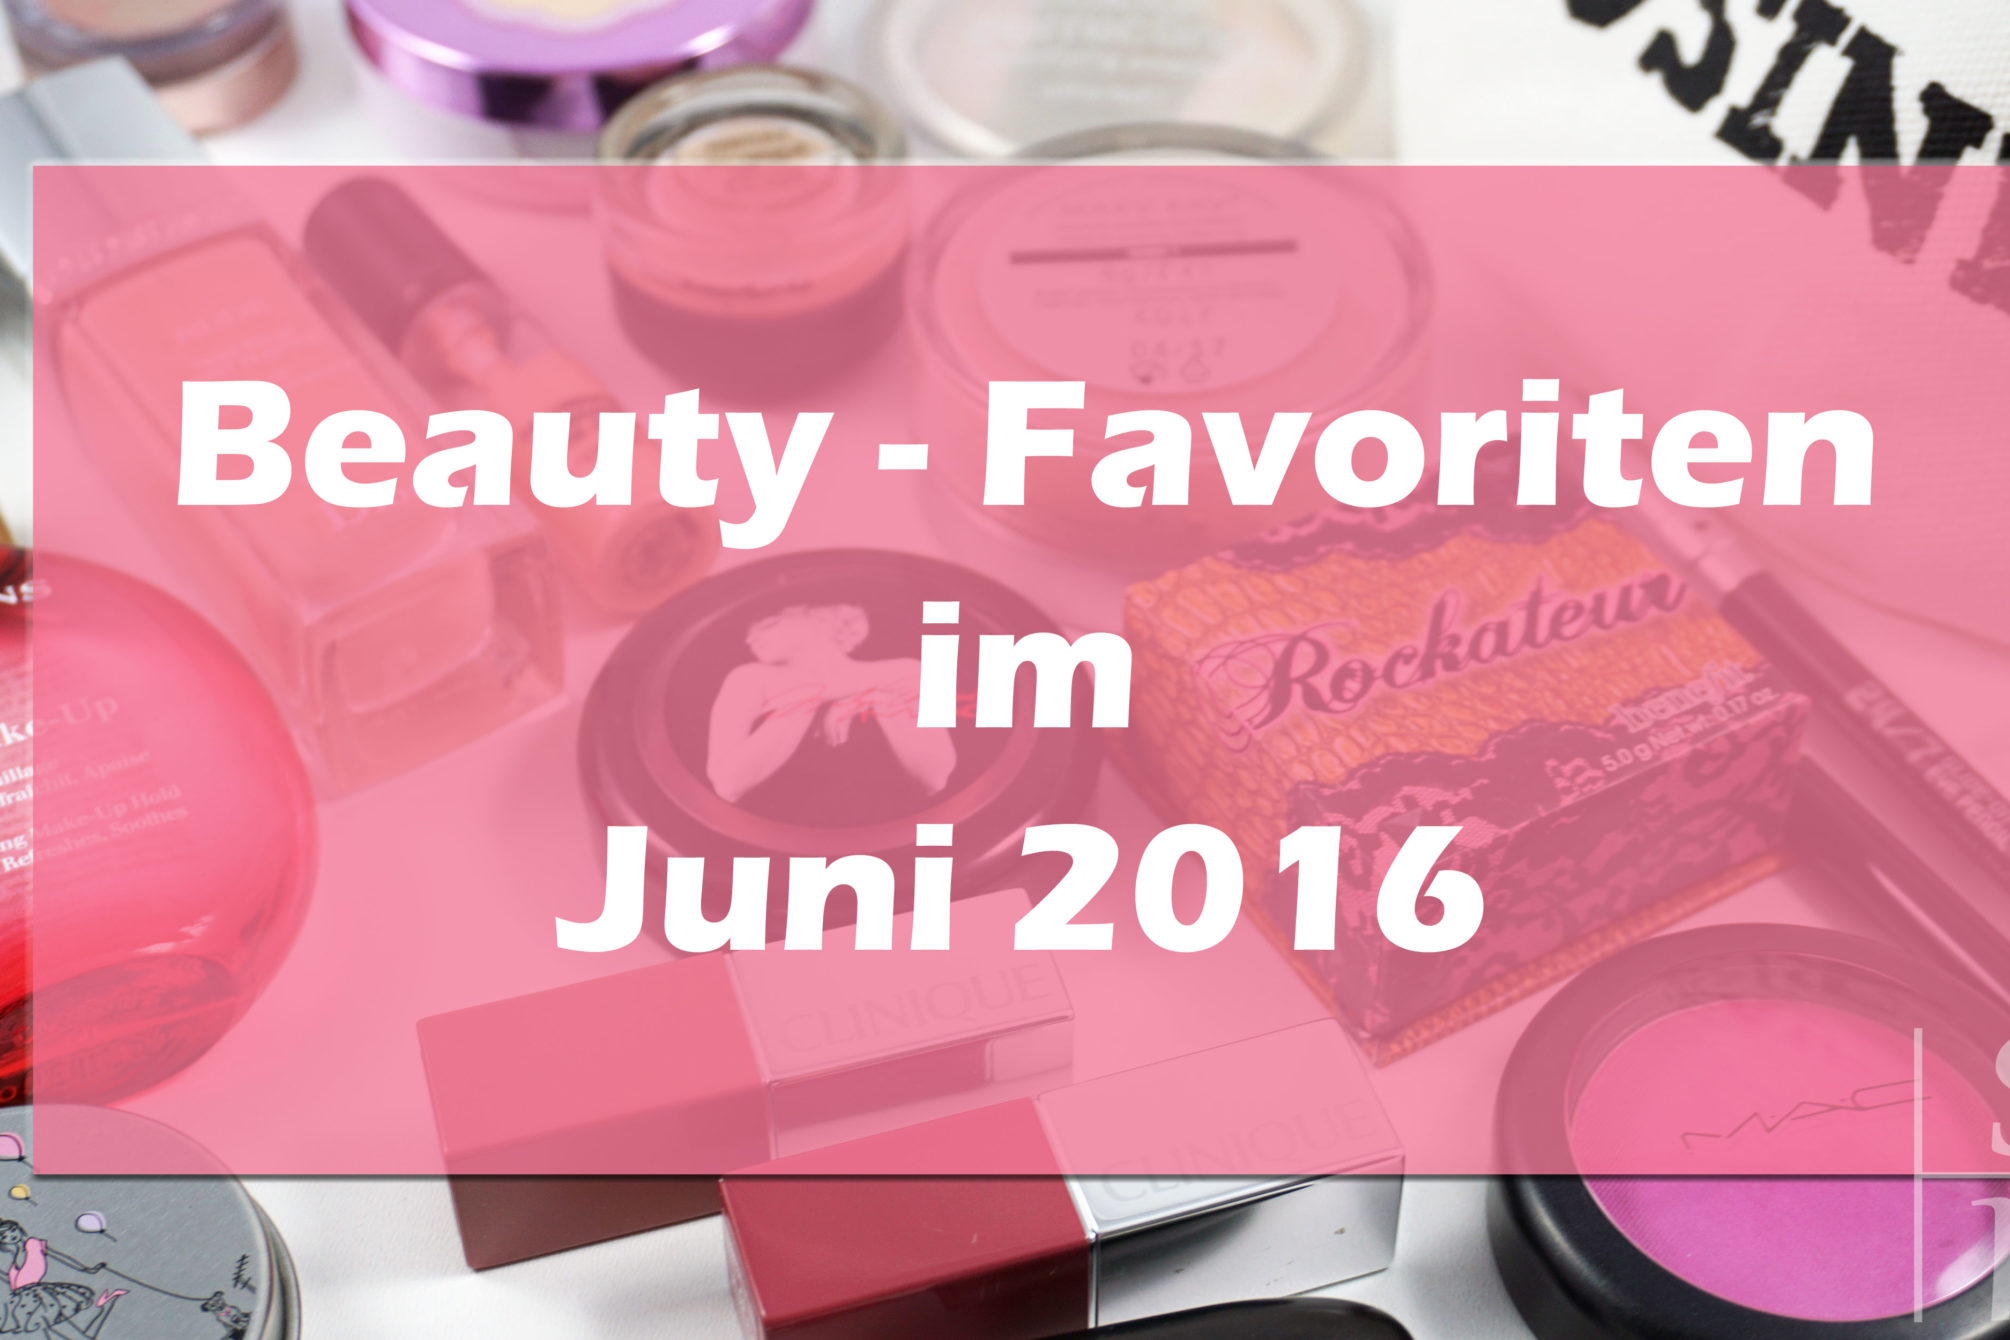 Beauty-Favoriten im Juni 2016